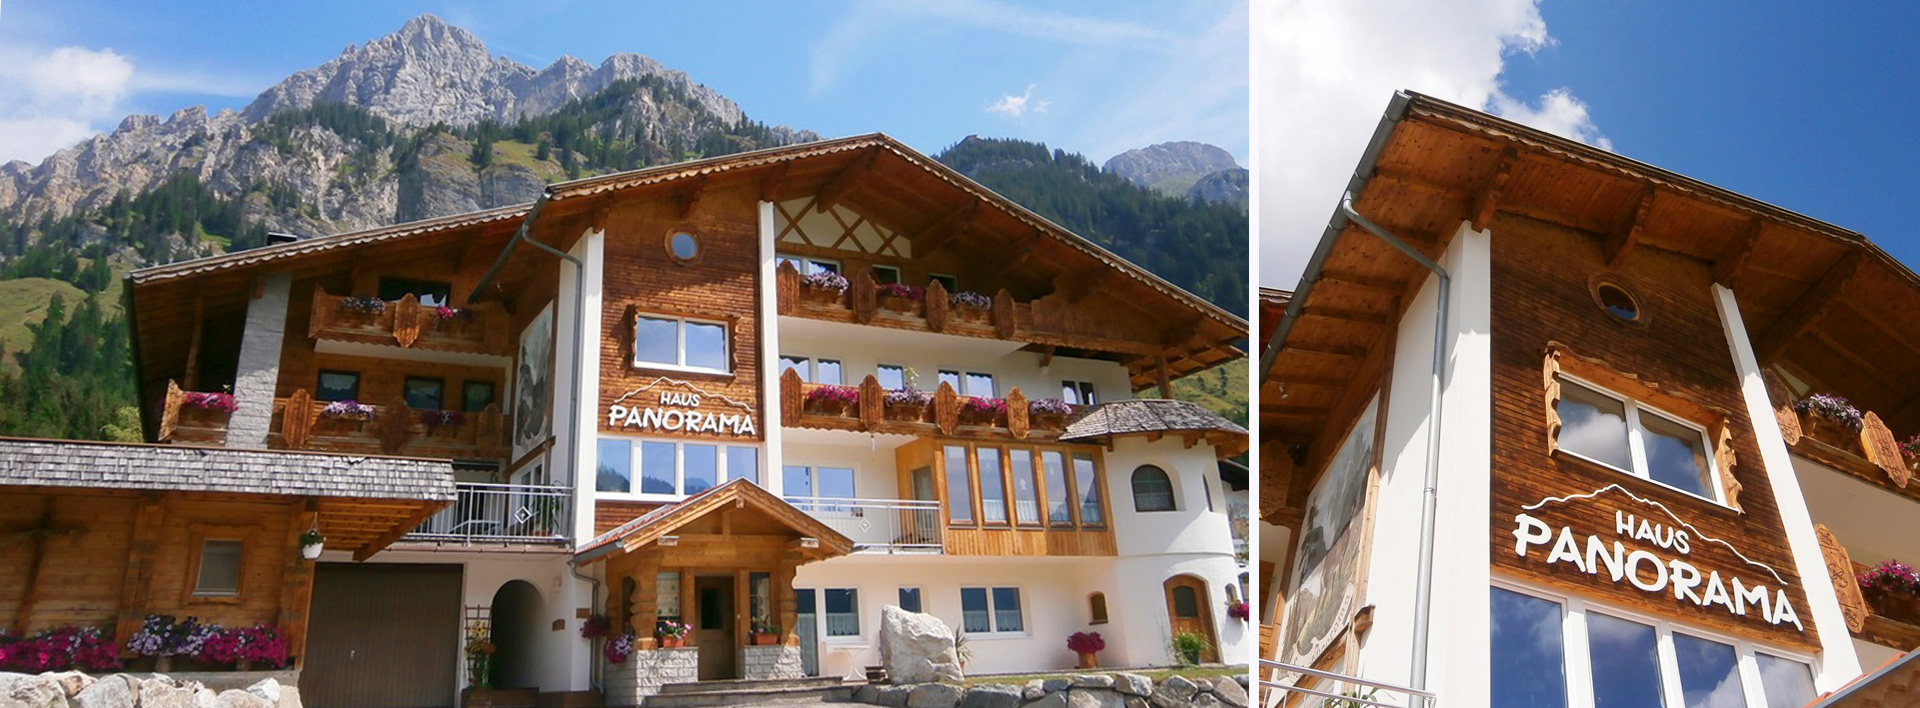 Pension Haus Panorama in Nesselwängle Tannheimer Tal